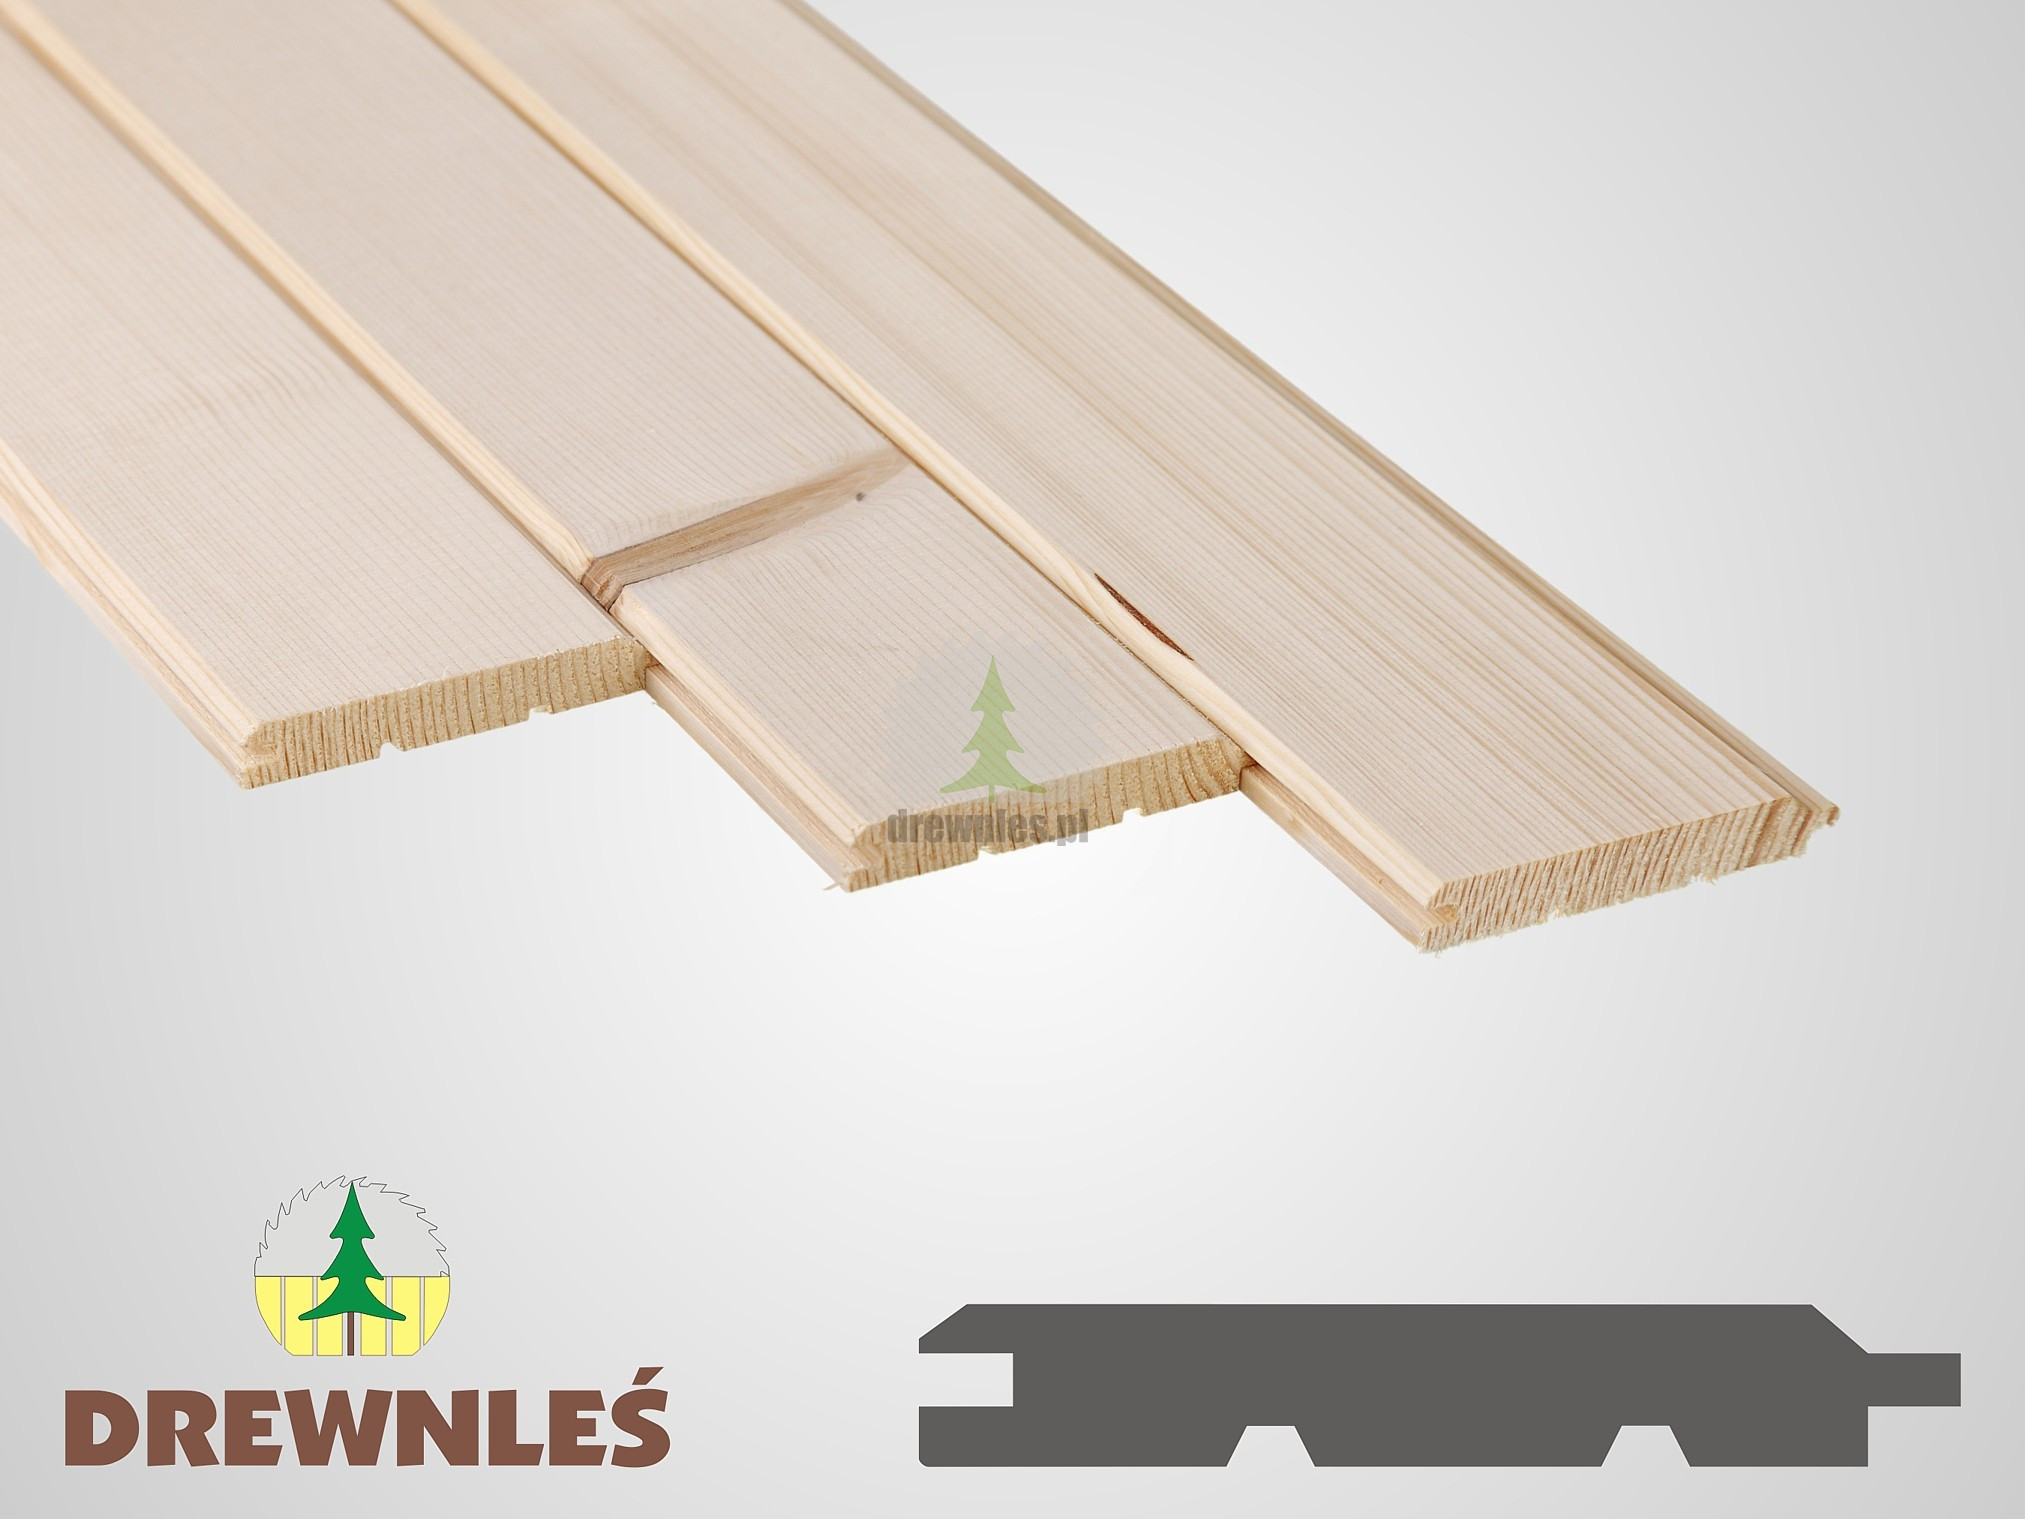 tongue and groove hardwood flooring prices of tongue and groove profile 96x14mm drewnleaš regarding gb tongue and groove profile 96x14 mm de faza profil